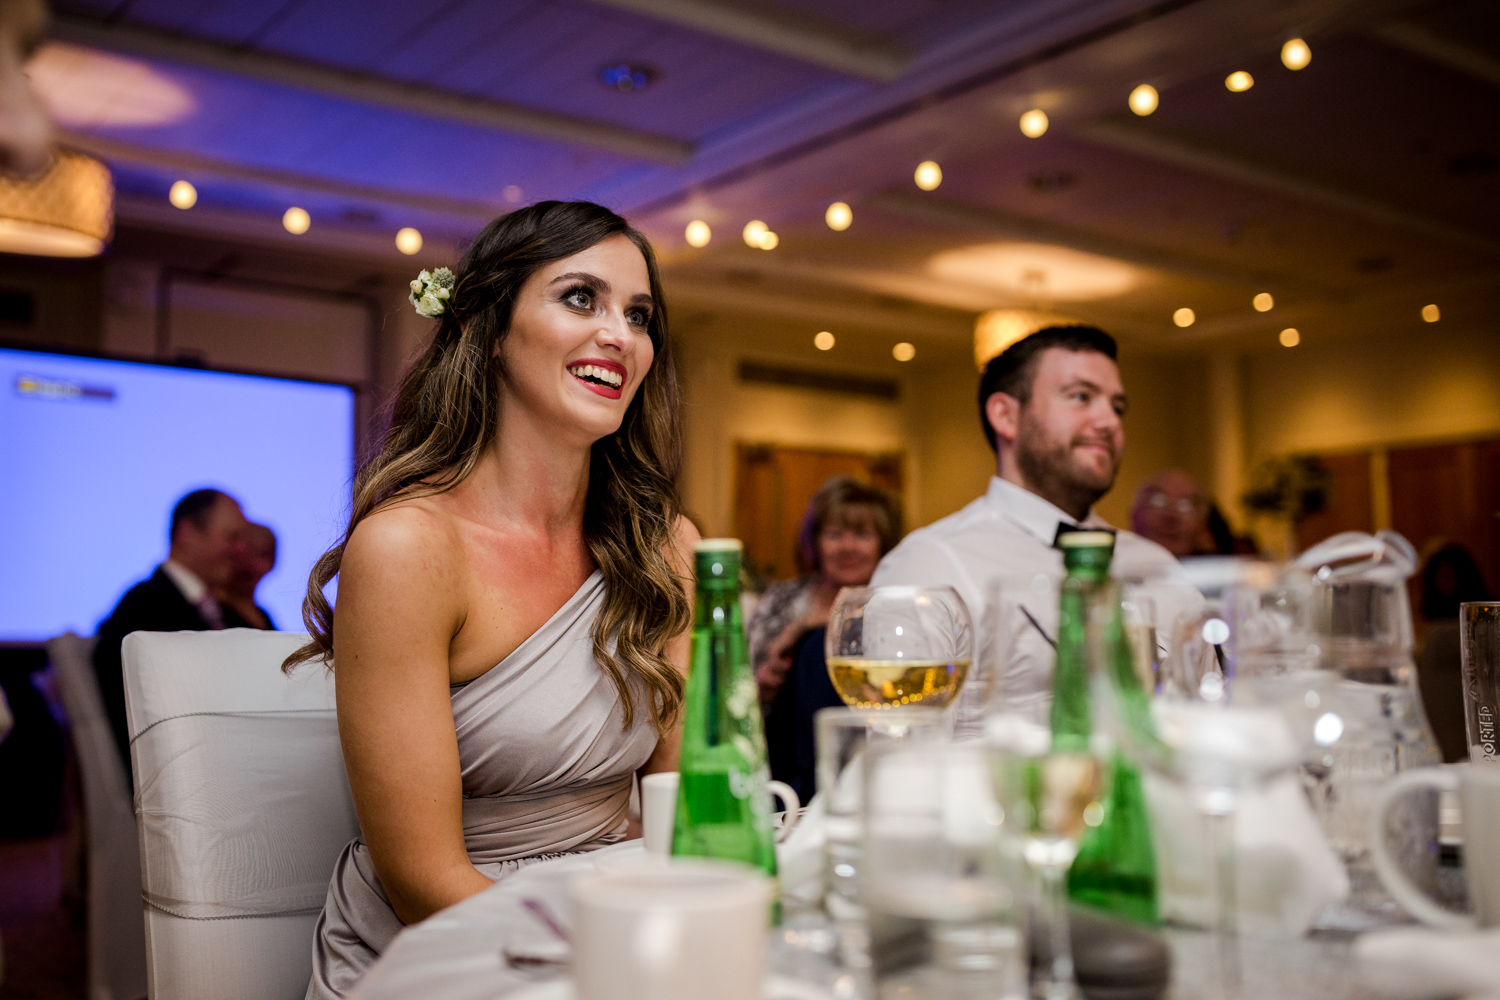 A bridesmaid during the speeches